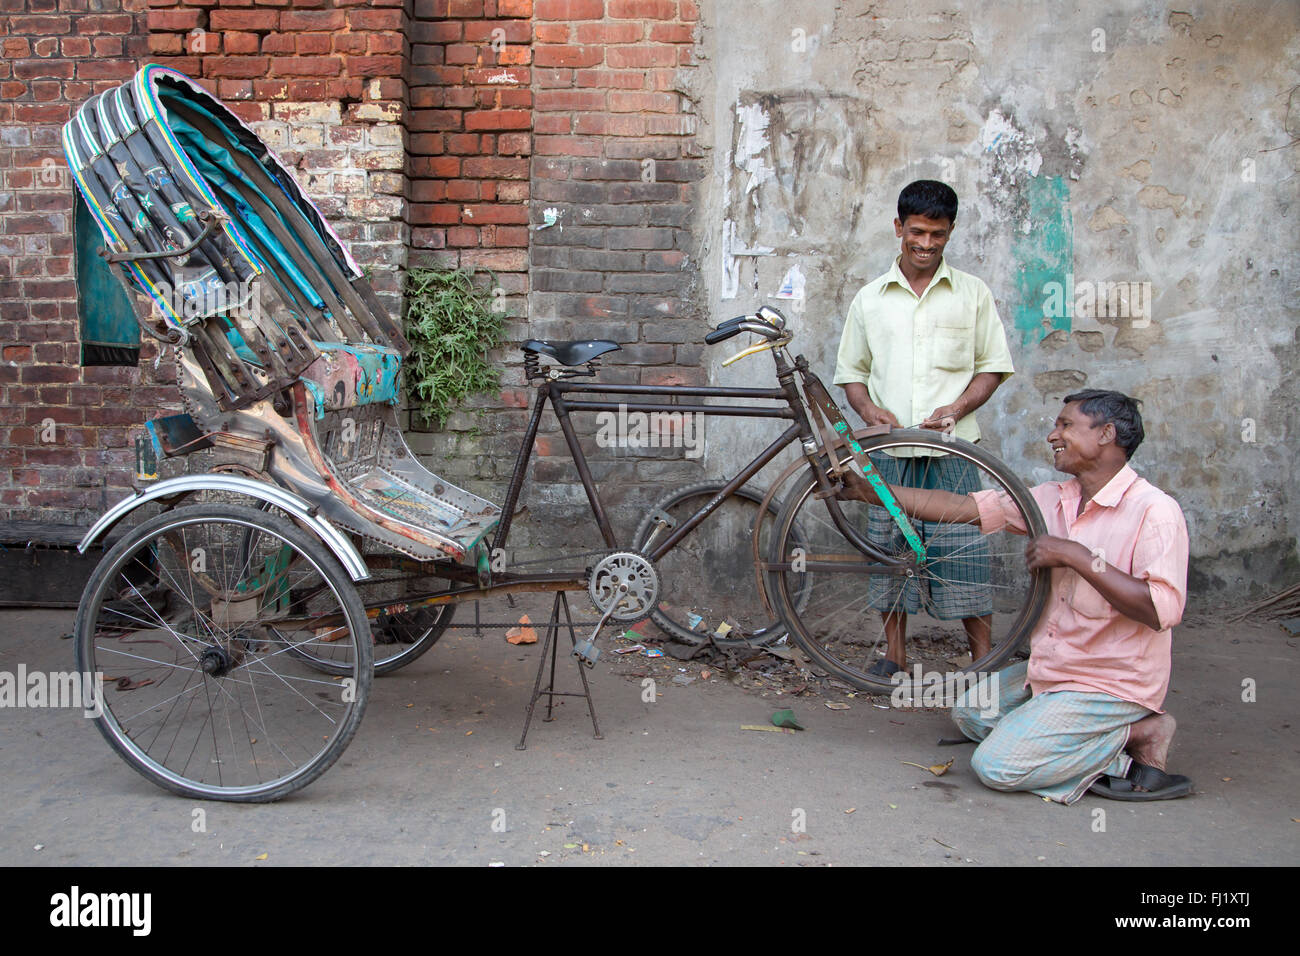 A smiling man repairs / changes a rickshaw flat tire with happy customer , Chittagong, Bangladesh - Stock Image